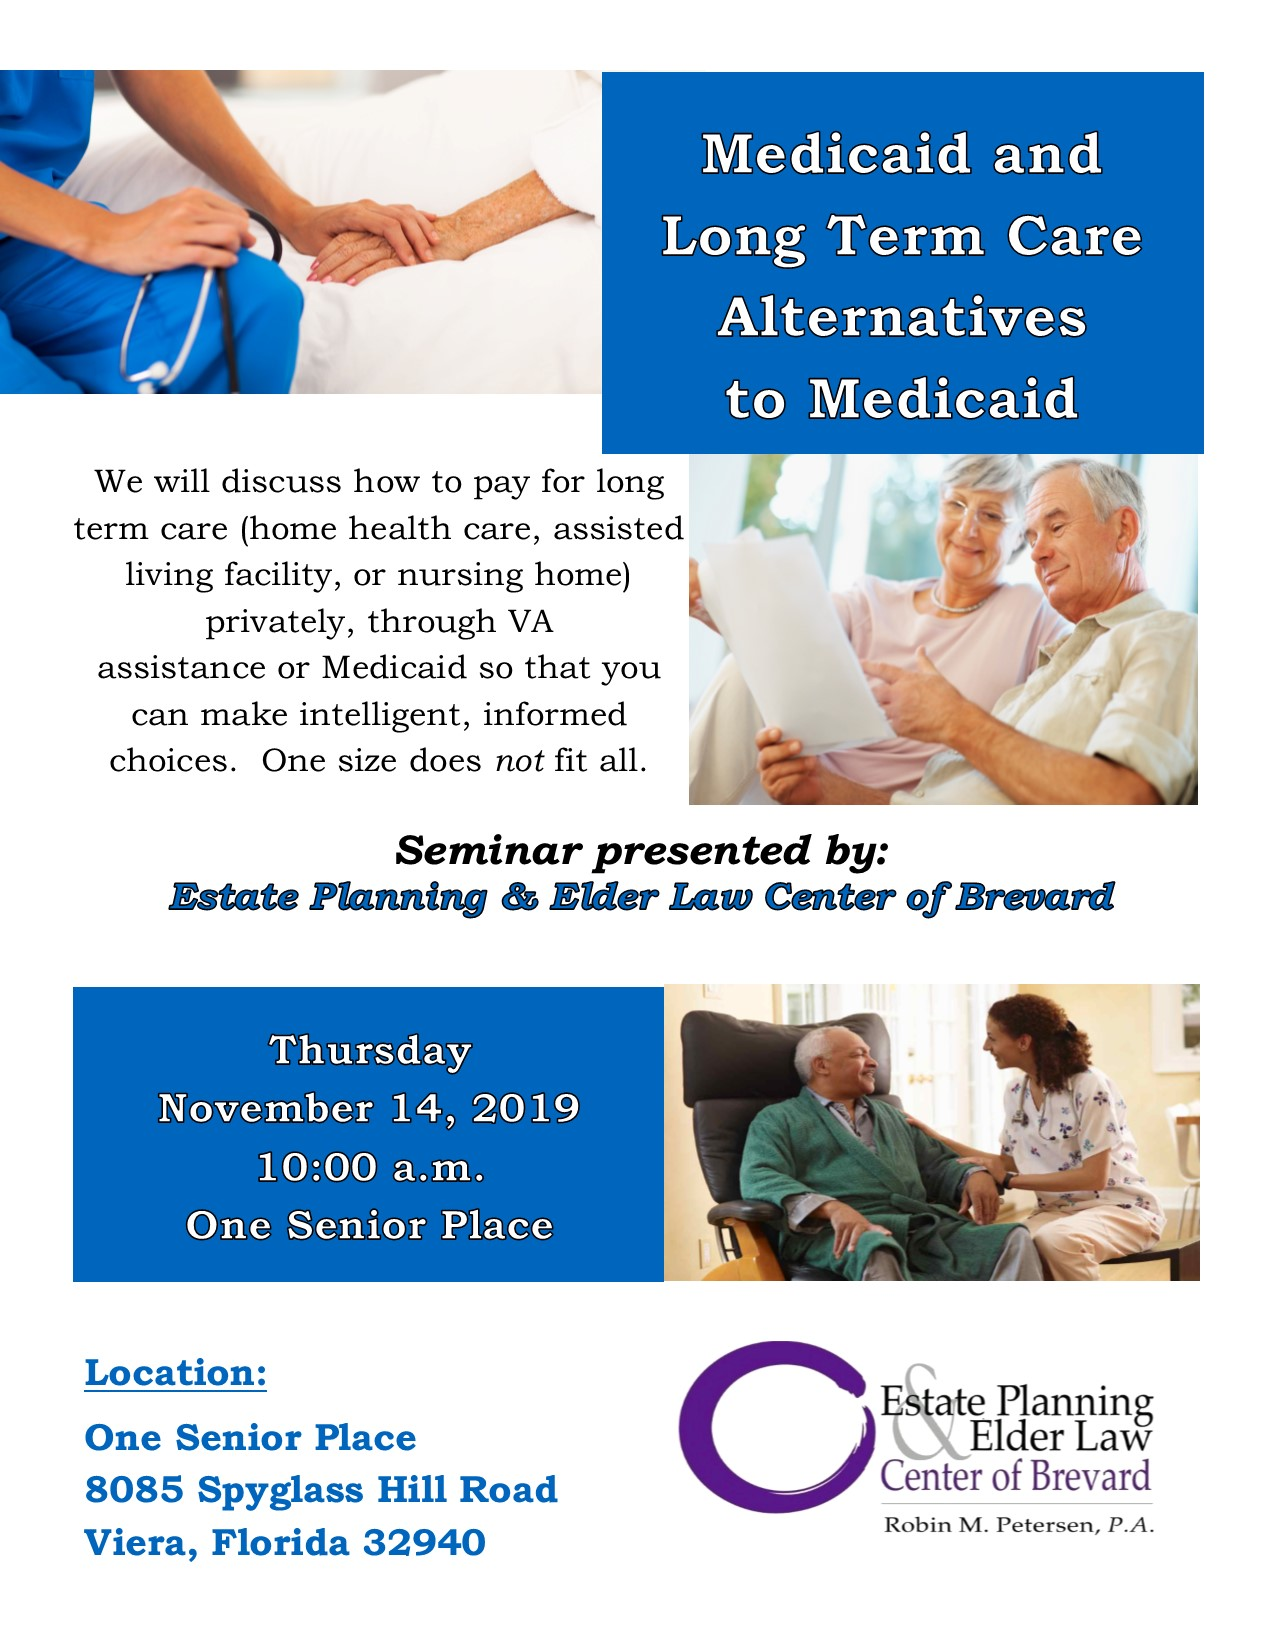 Medicaid and Long Term Care Alternatives to Medicaid Presented by Estate Planning and Elder Law Center of Brevard